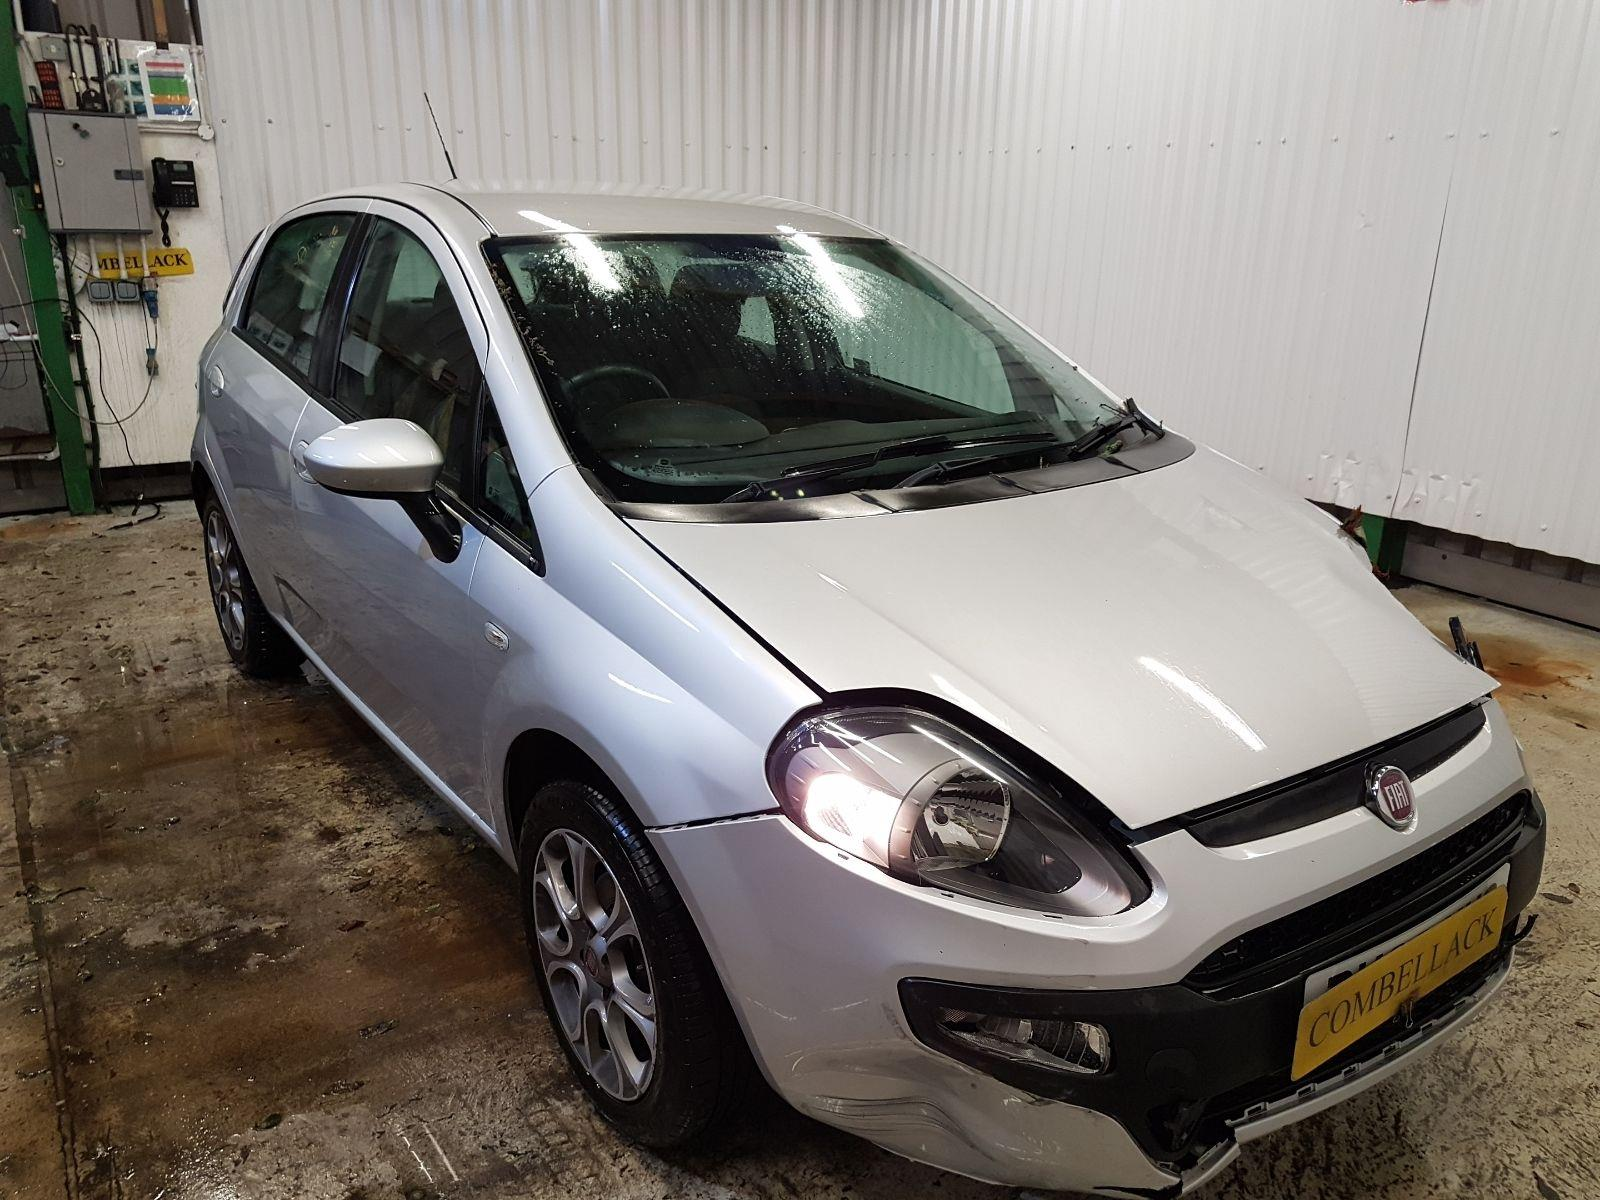 Fiat Punto Evo 2010 To 2012 GP 5 Door Hatchback